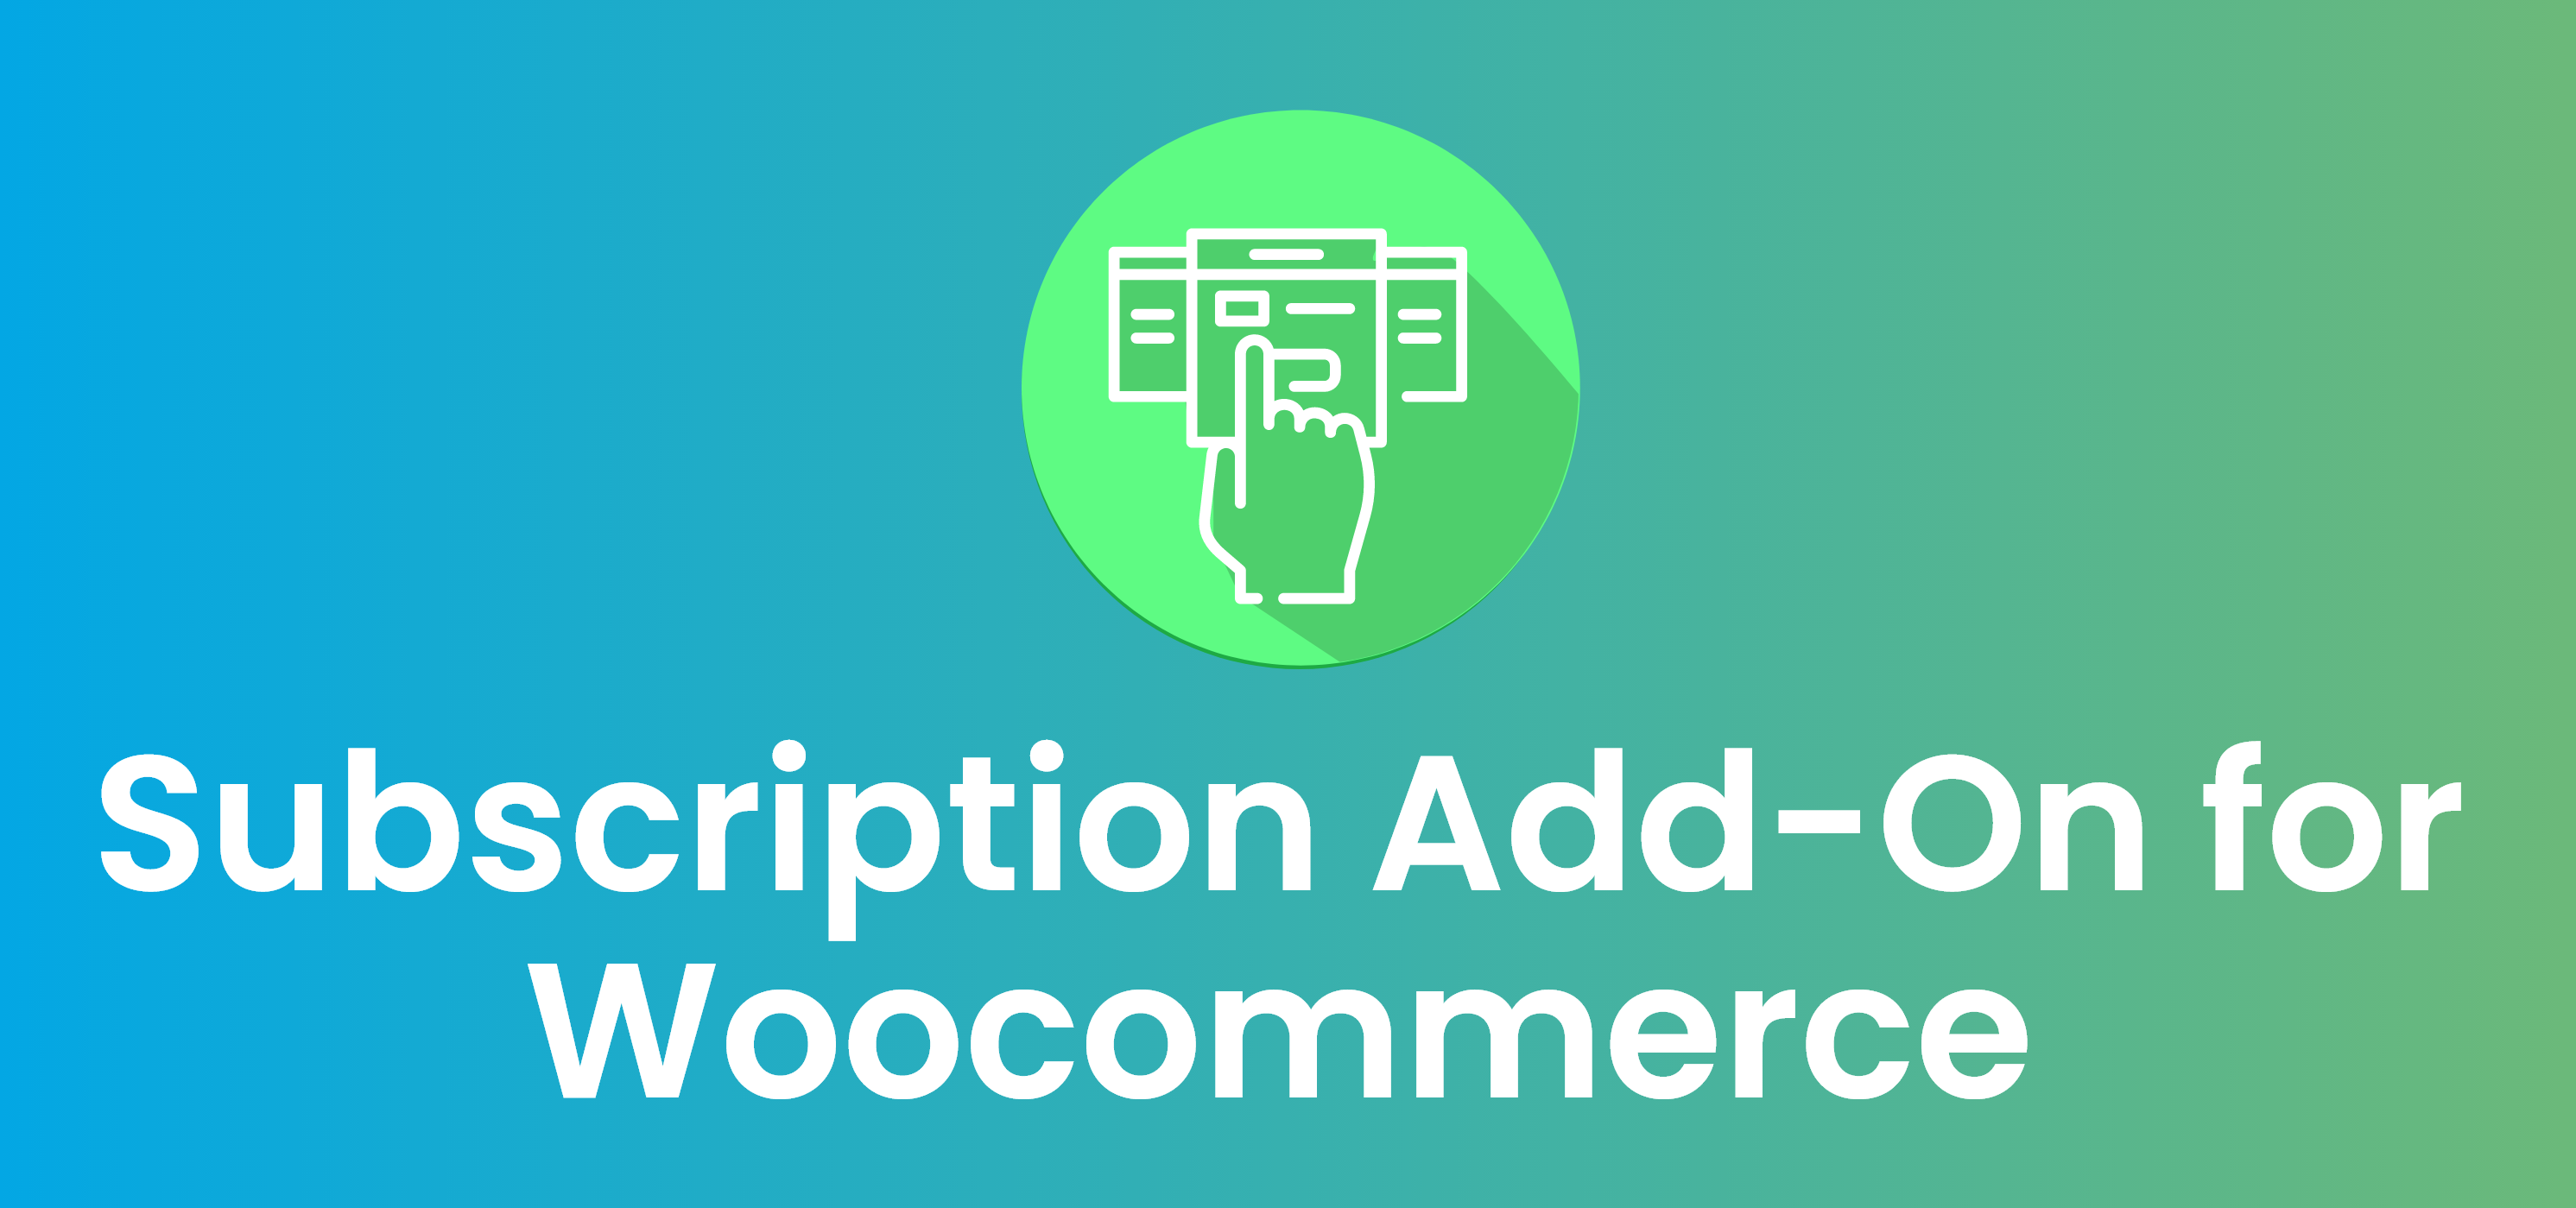 Subscriptions Add-On for WooCommerce